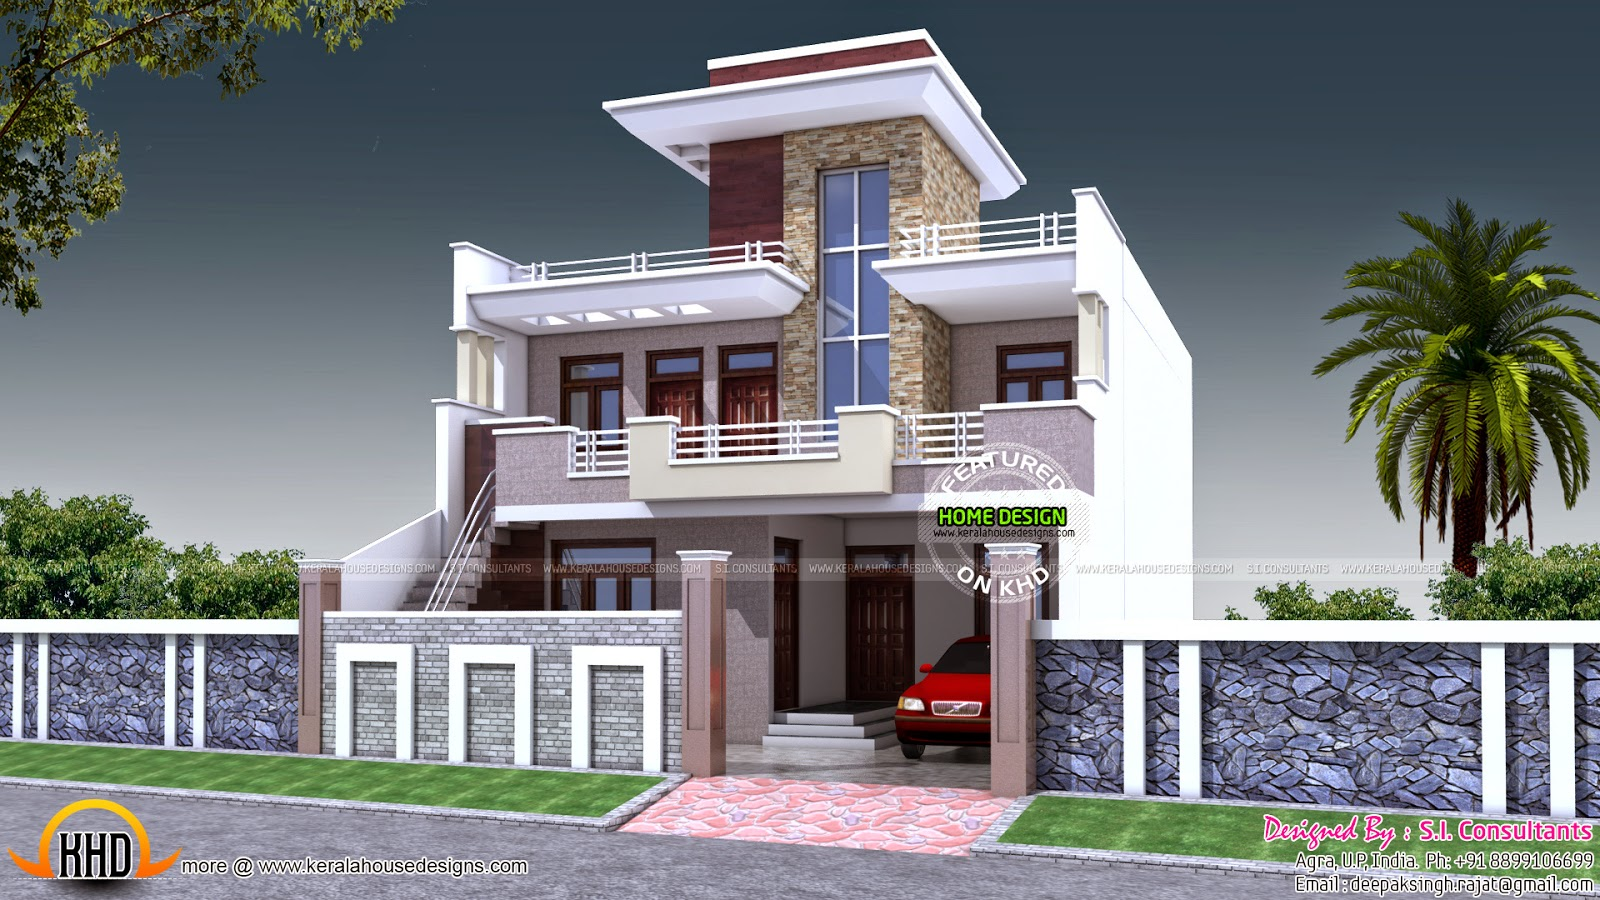 2 House Plans With Shops On Ground Floor Keralahousedesigns